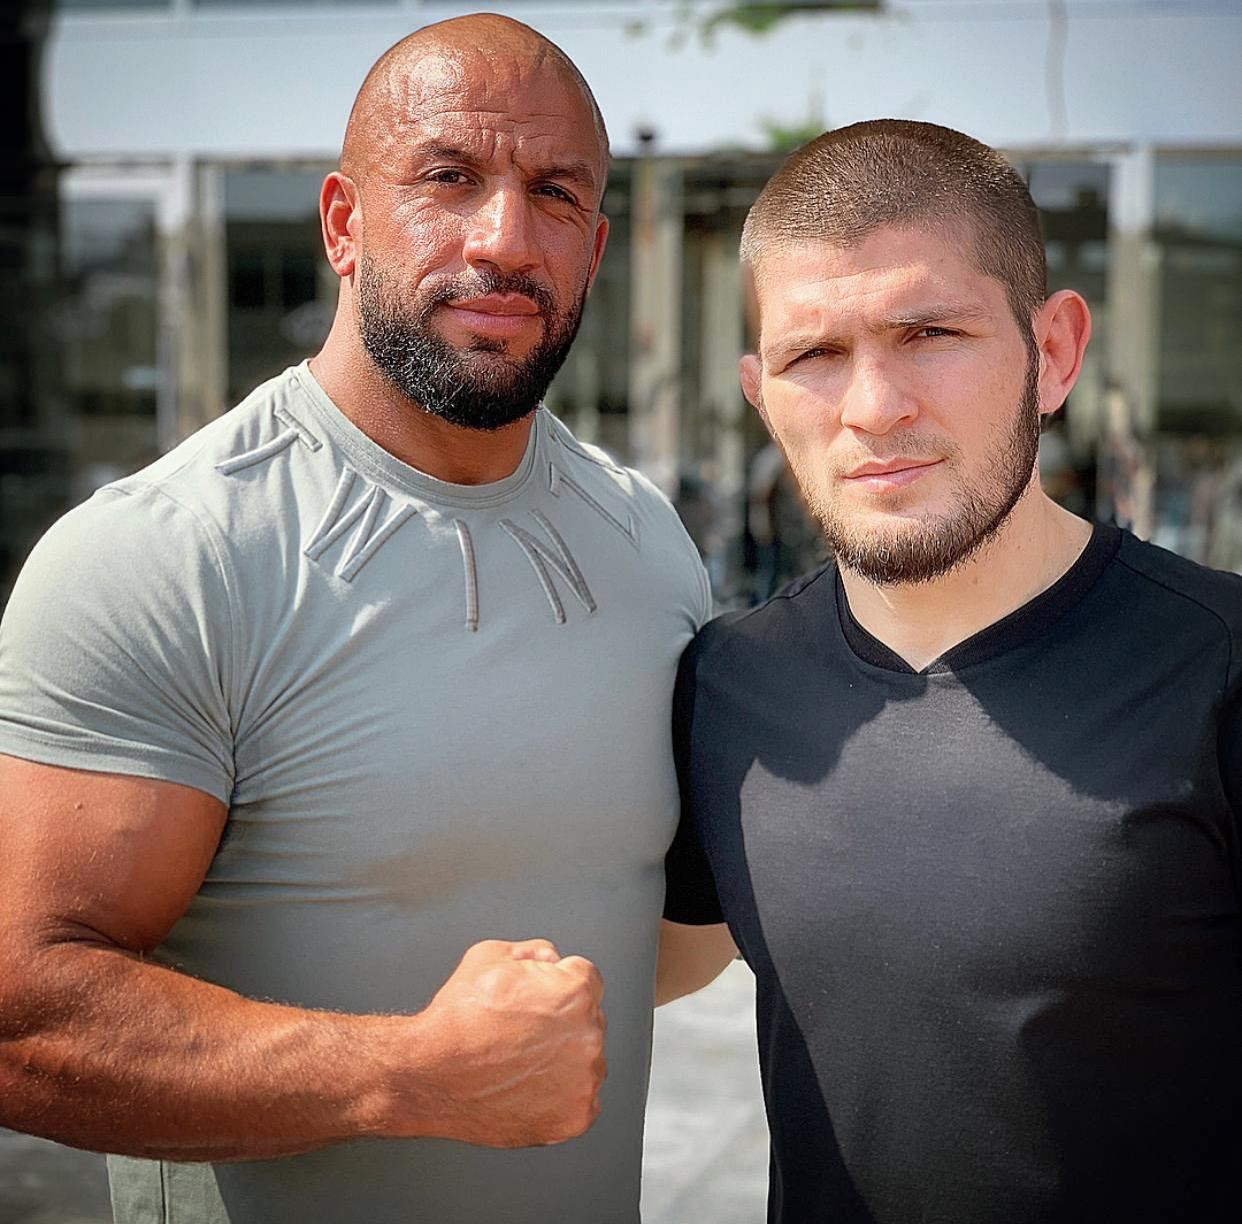 Tam Khan and Khabib Nurmagomedov